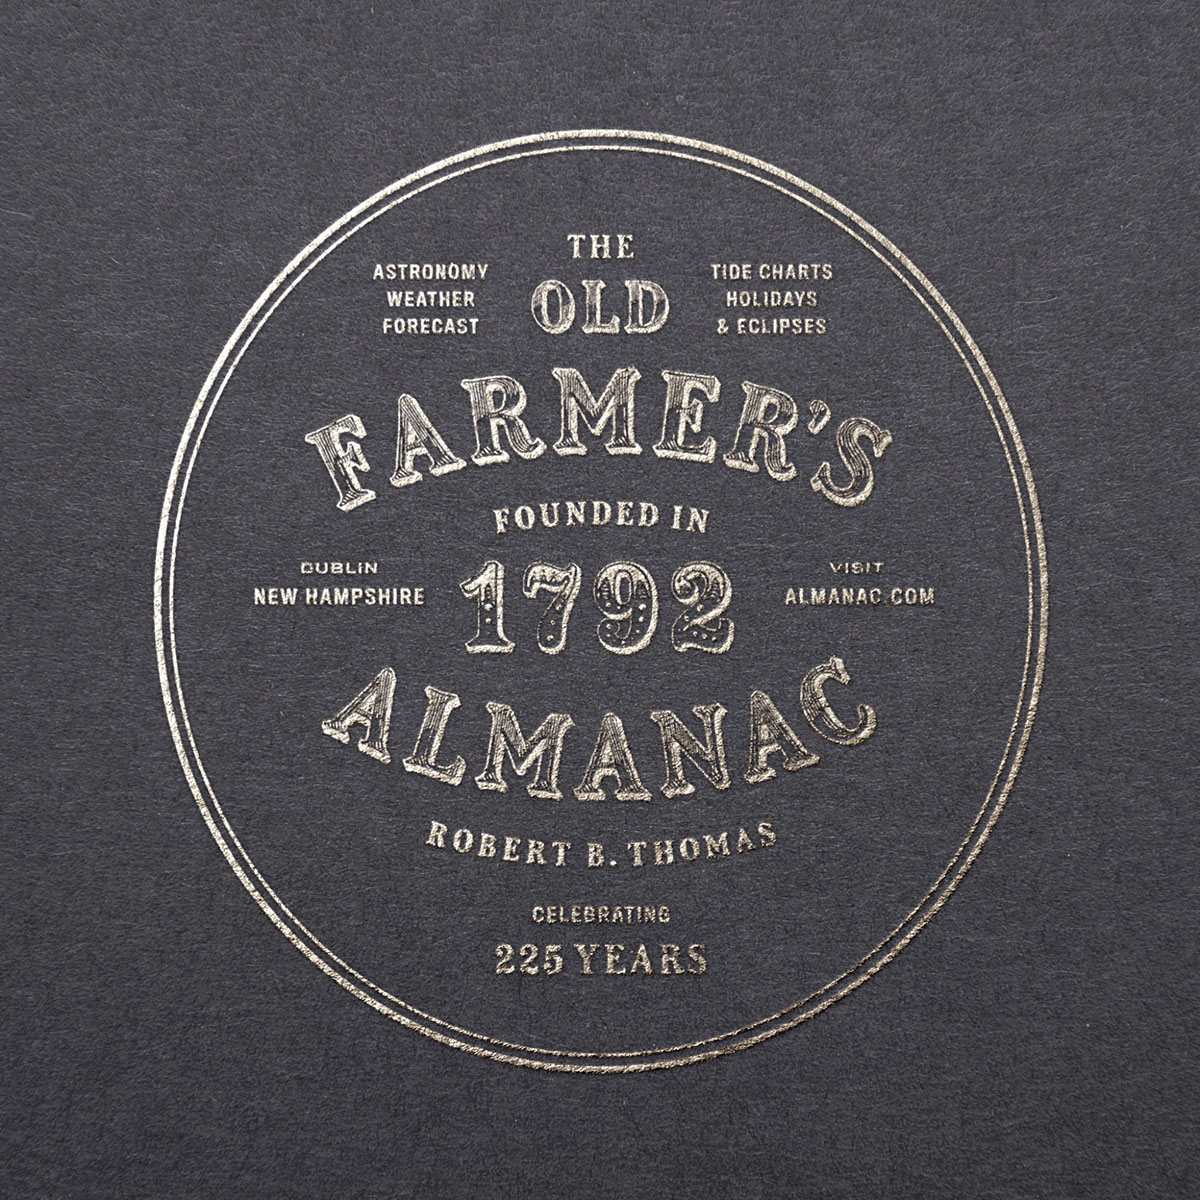 The Old Farmer's Almanac On RISD Portfolios